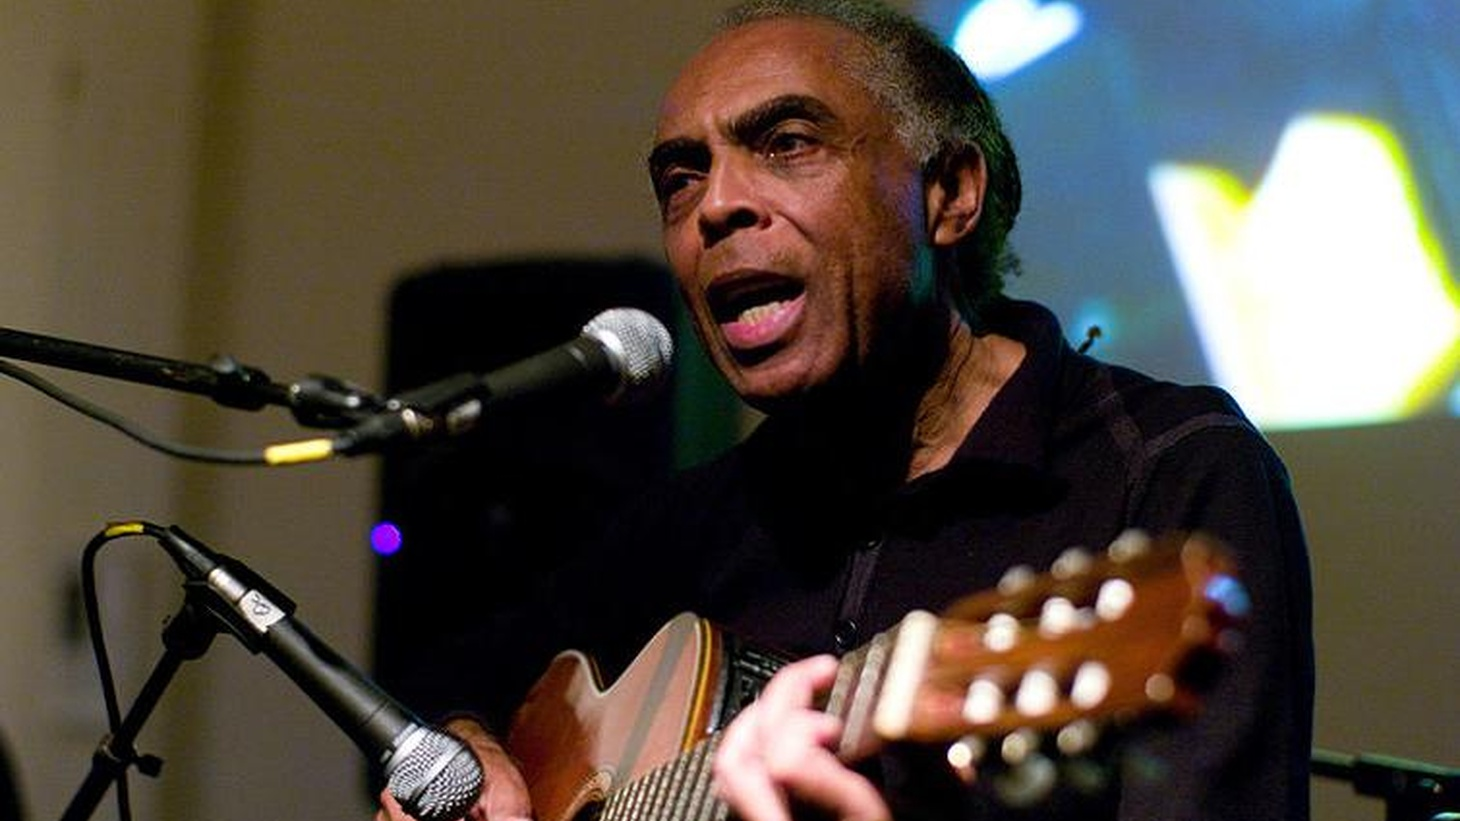 Brazilian superstar Gilberto Gil is Tom's guest on Sunday March 14th @ 1 p.m.  Gil formed the Tropicalia movement back in the late 60s along with Caetano Veloso and others, and paid dearly for it—he was exiled for years by the dictatorship.  He returned to Brazil from his exile in London, and went on to record some of the most memorable albums in Brazilian music.   Current Brazilian President Lula da Silva appointed him Minister of Culture, a position he held for five years.